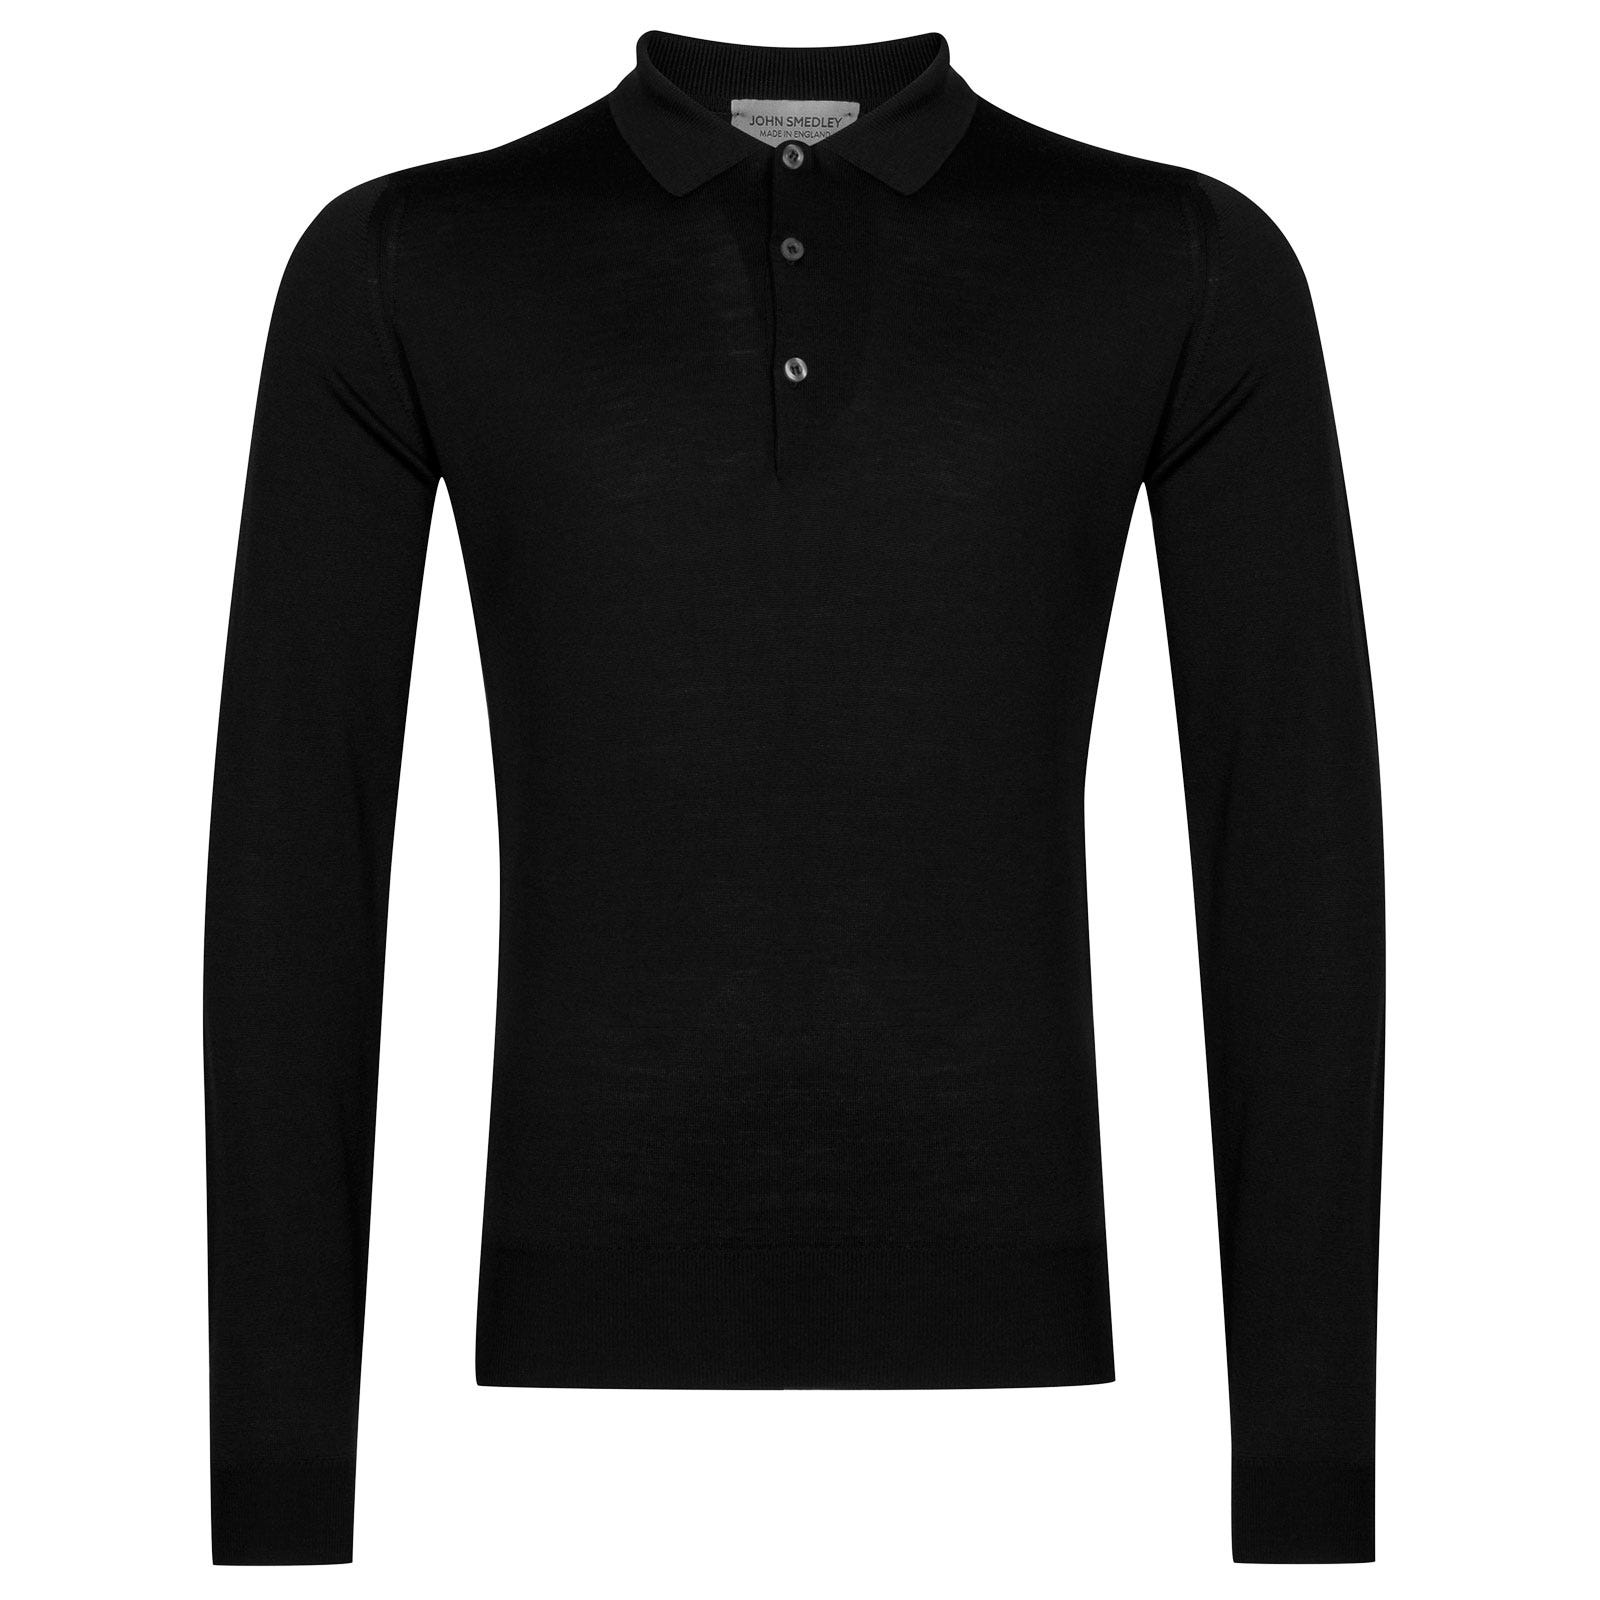 John Smedley Belper Merino Wool Shirt in Black-L